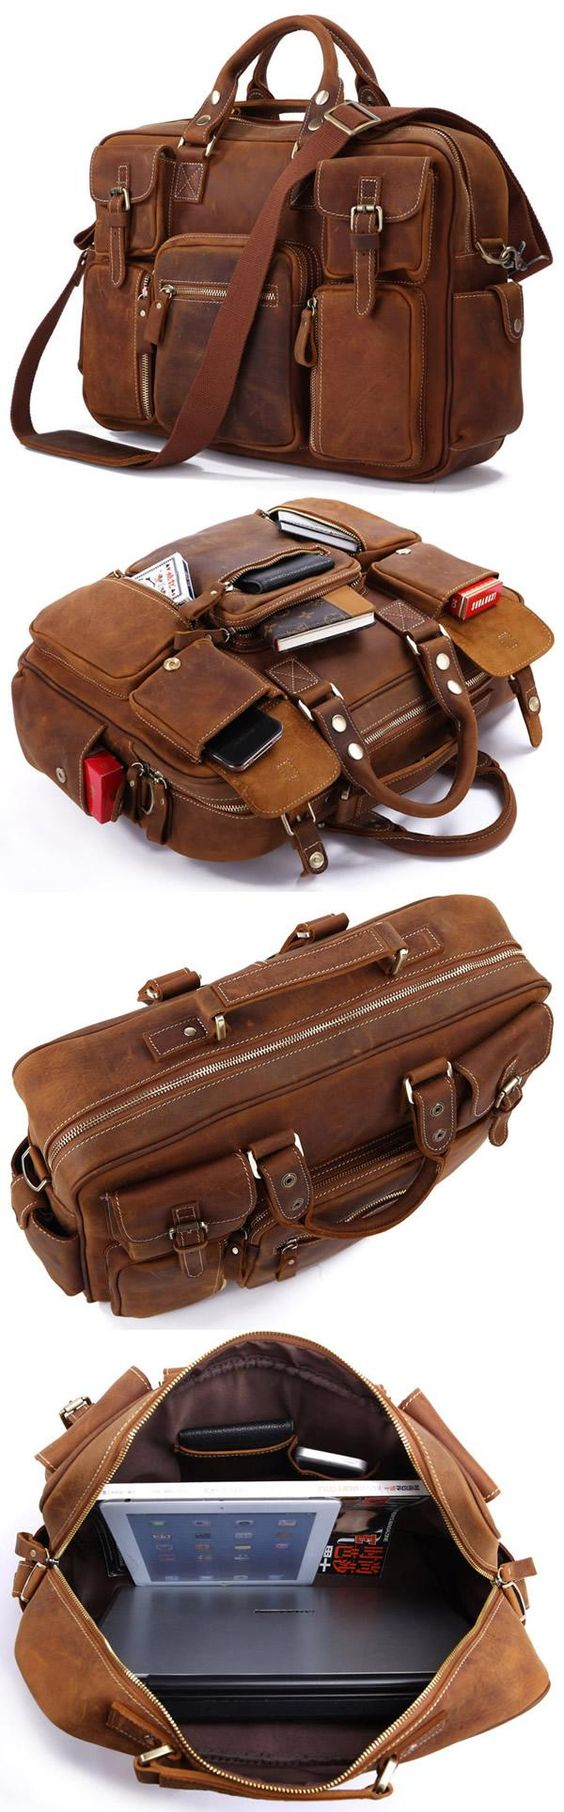 This one useful leather bag